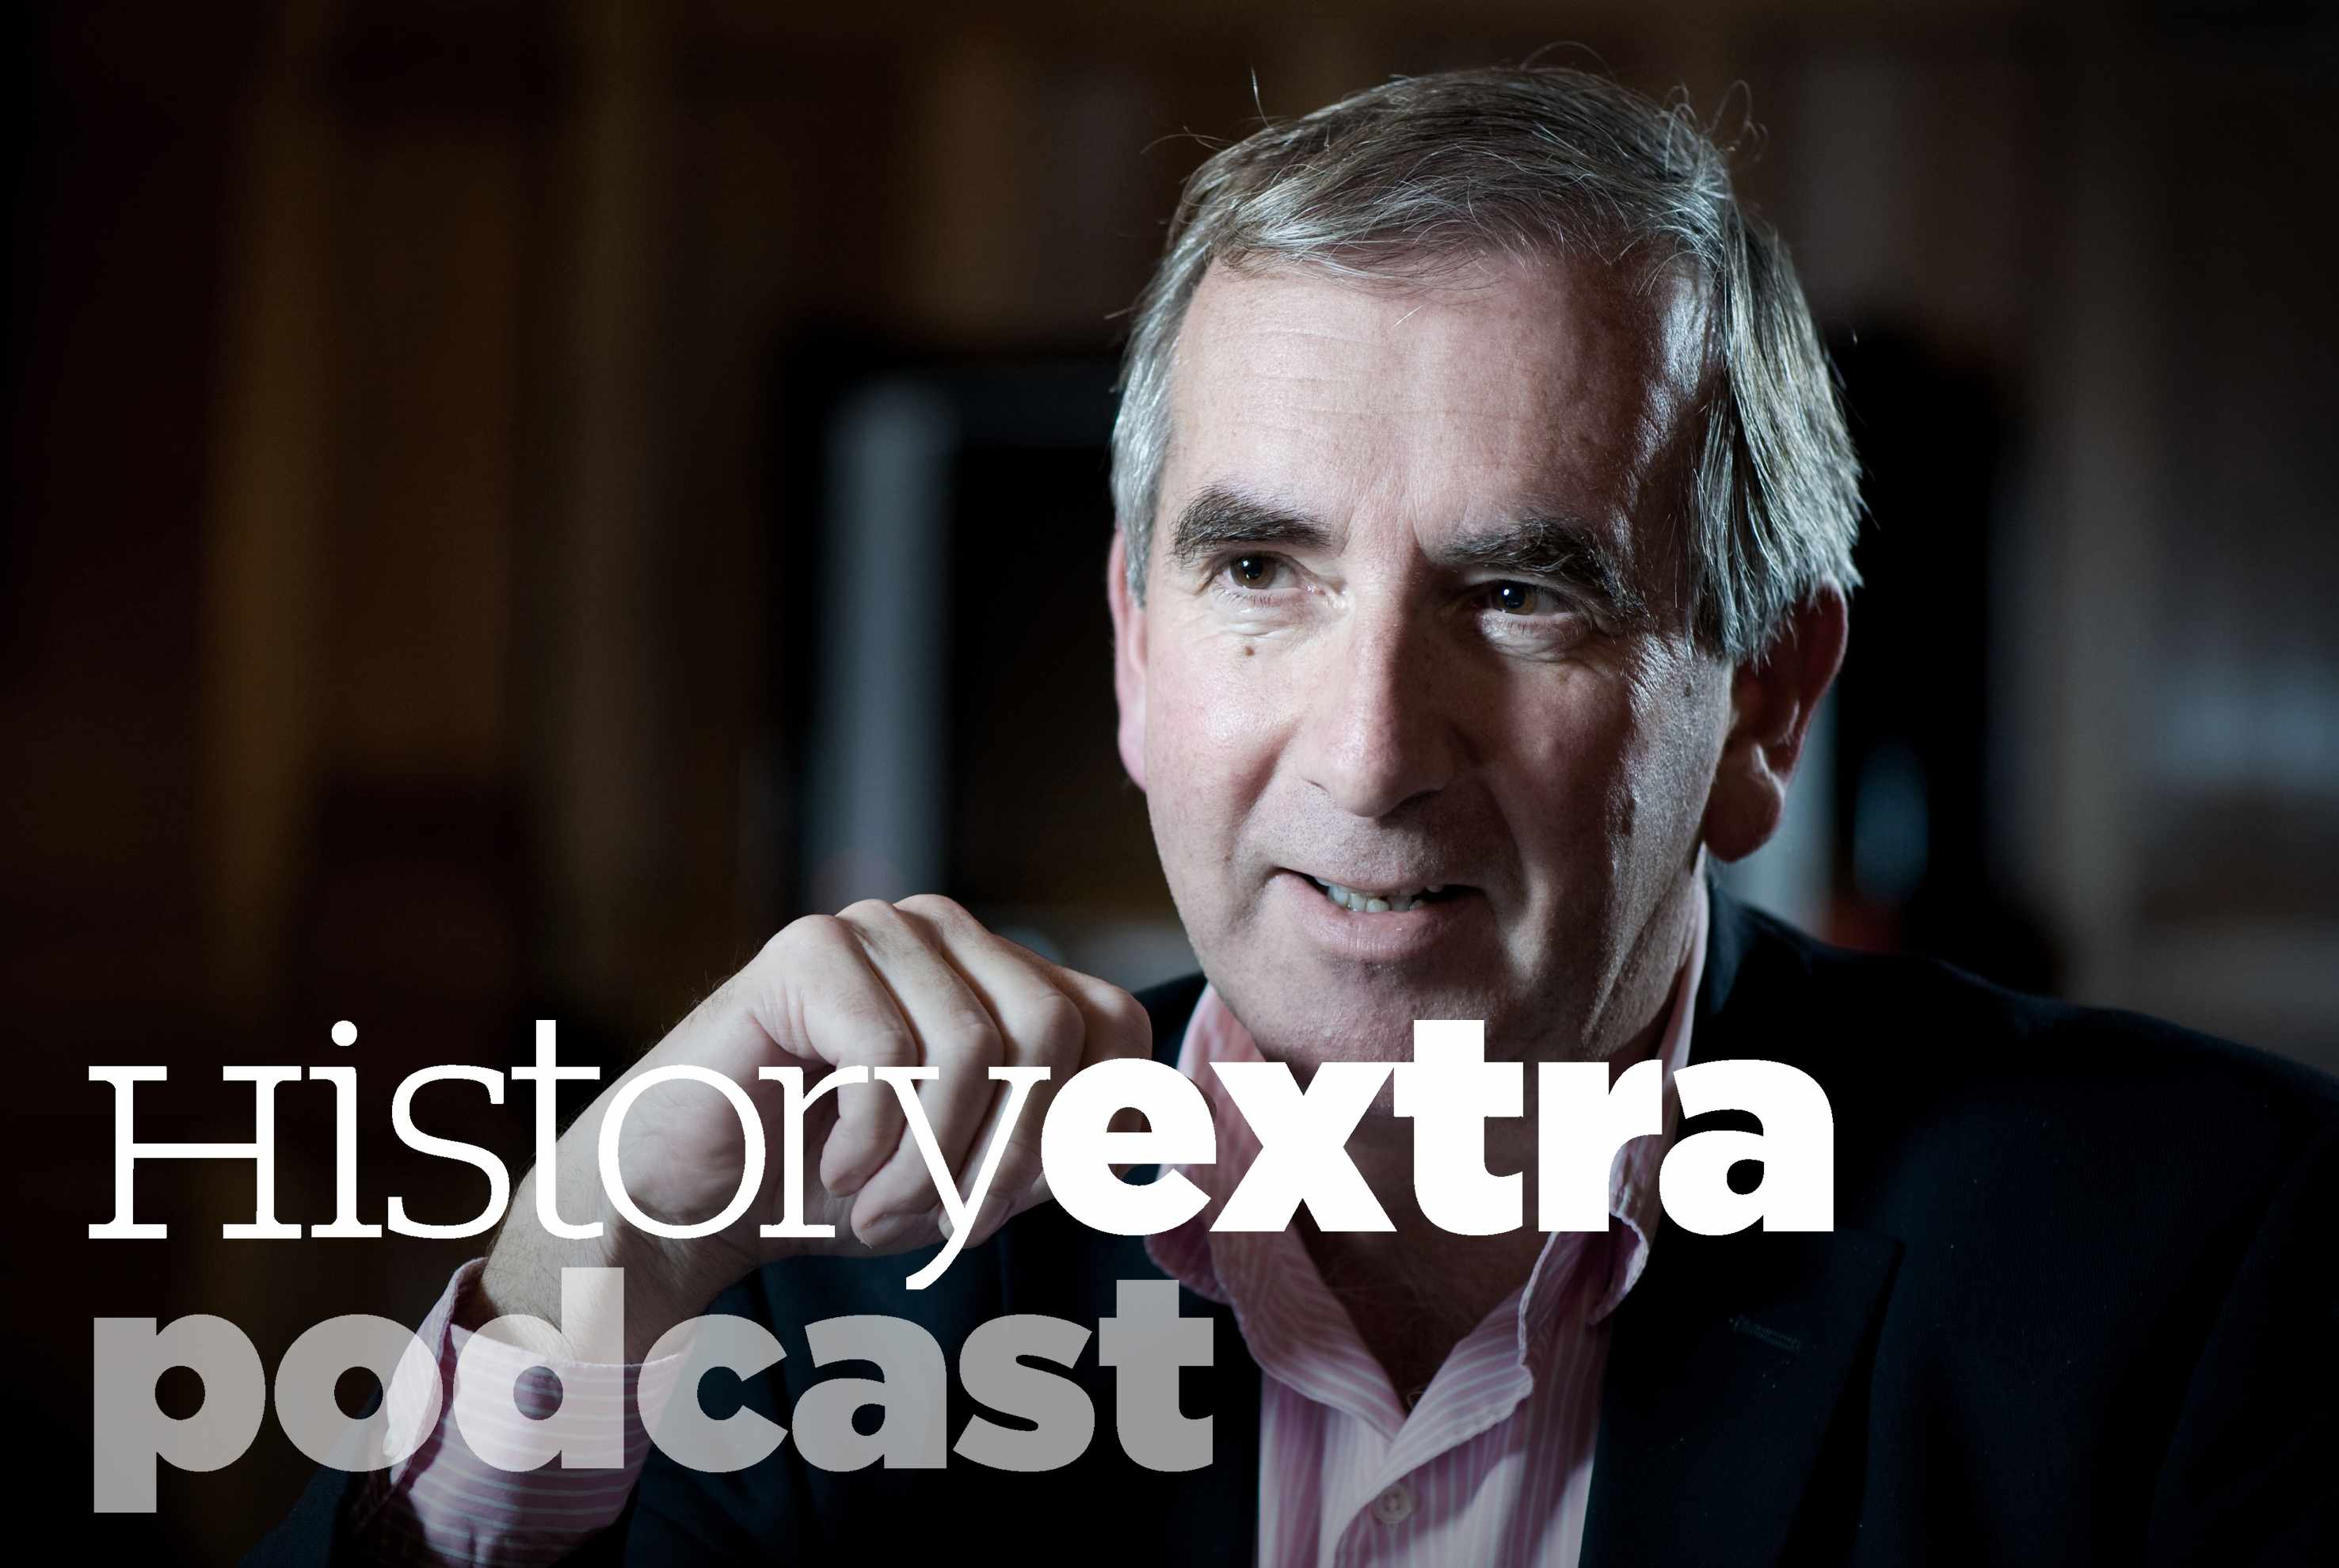 Podcast-Website-large-Robert-Harris-17c0a43